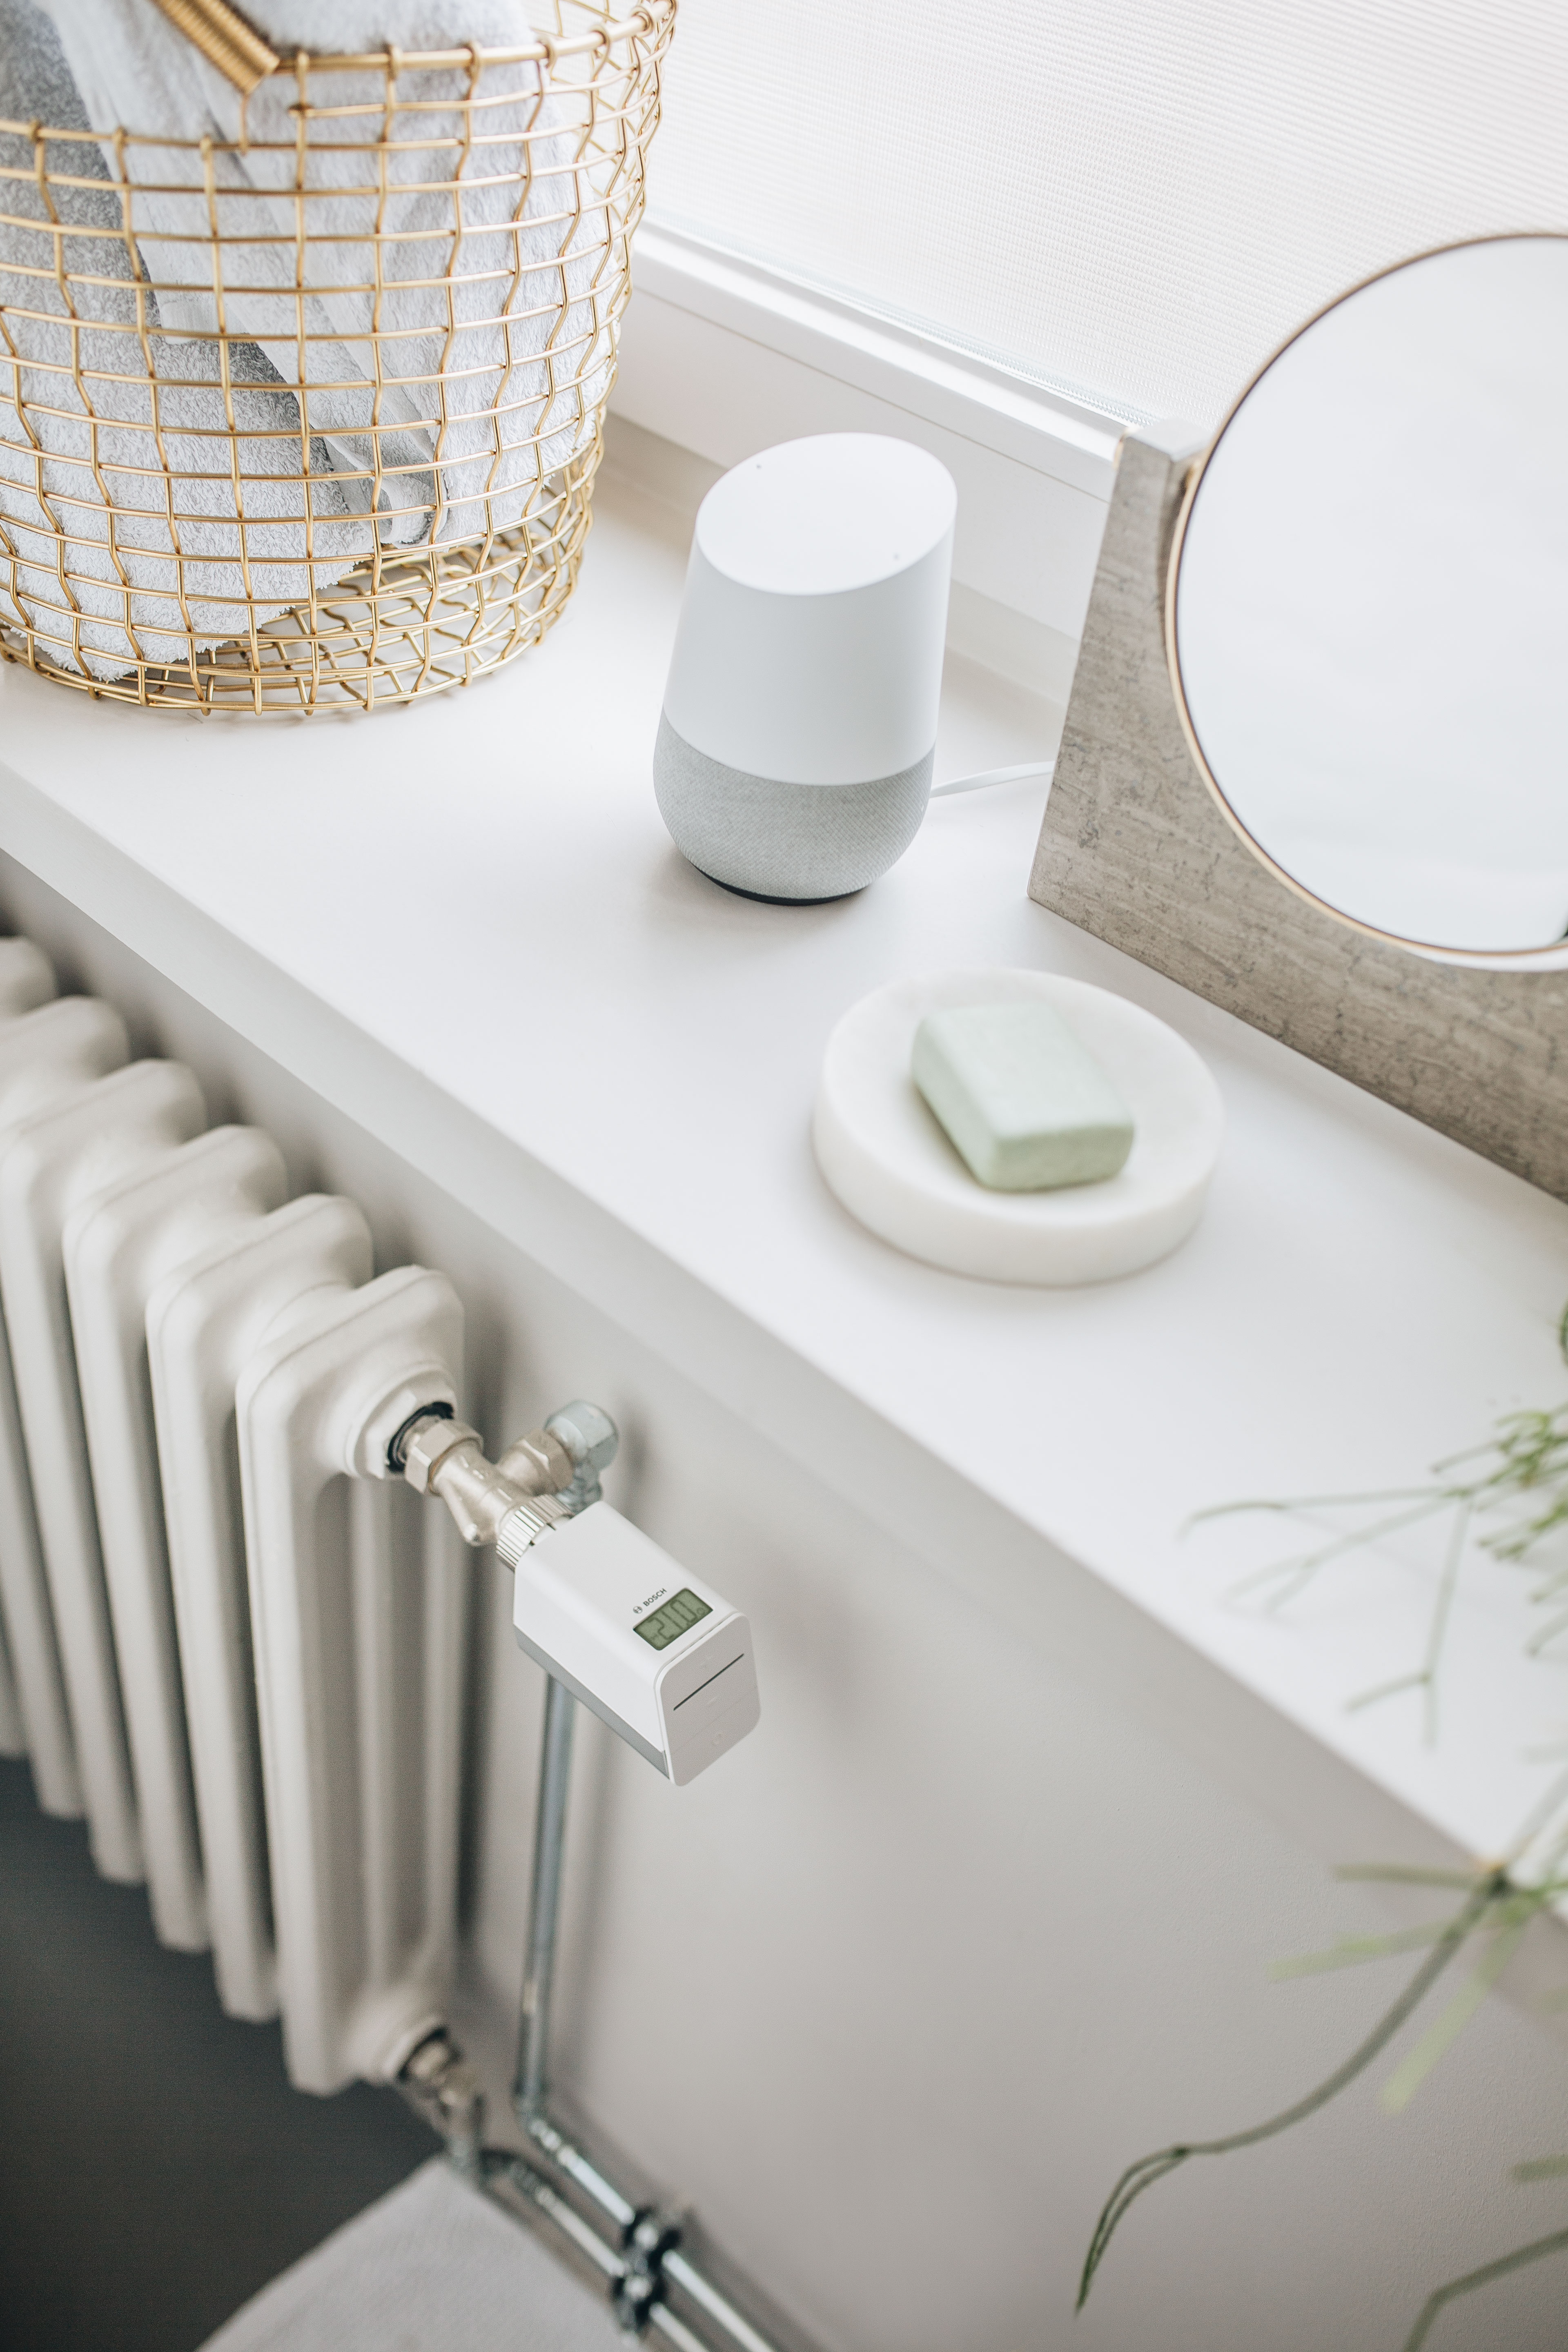 Bosch Smart Home Sprachsteuerung via Google Assistant